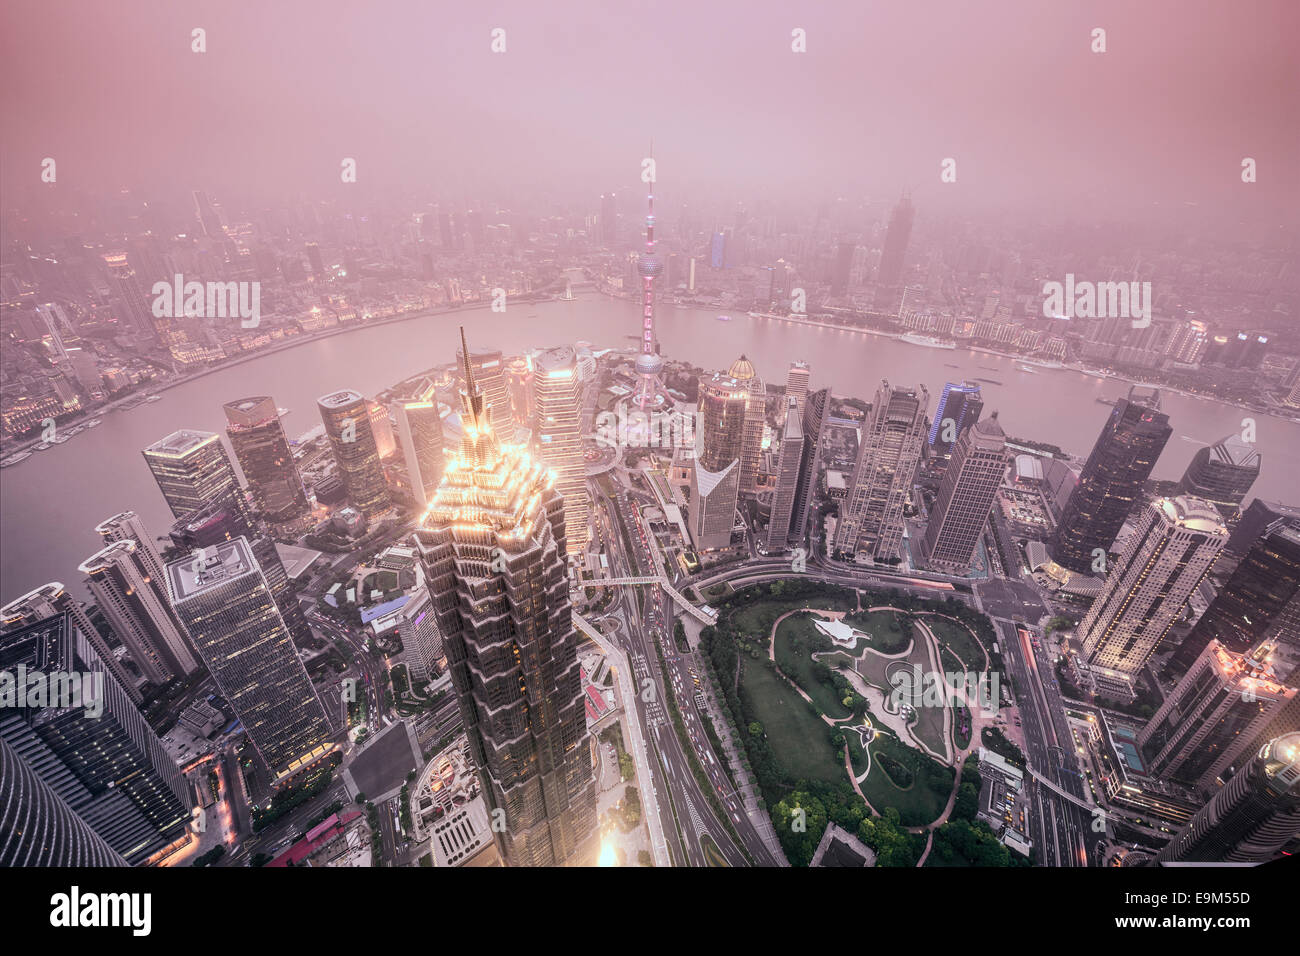 Shanghai, China City Skyline view over the Pudong Financial District. Stock Photo